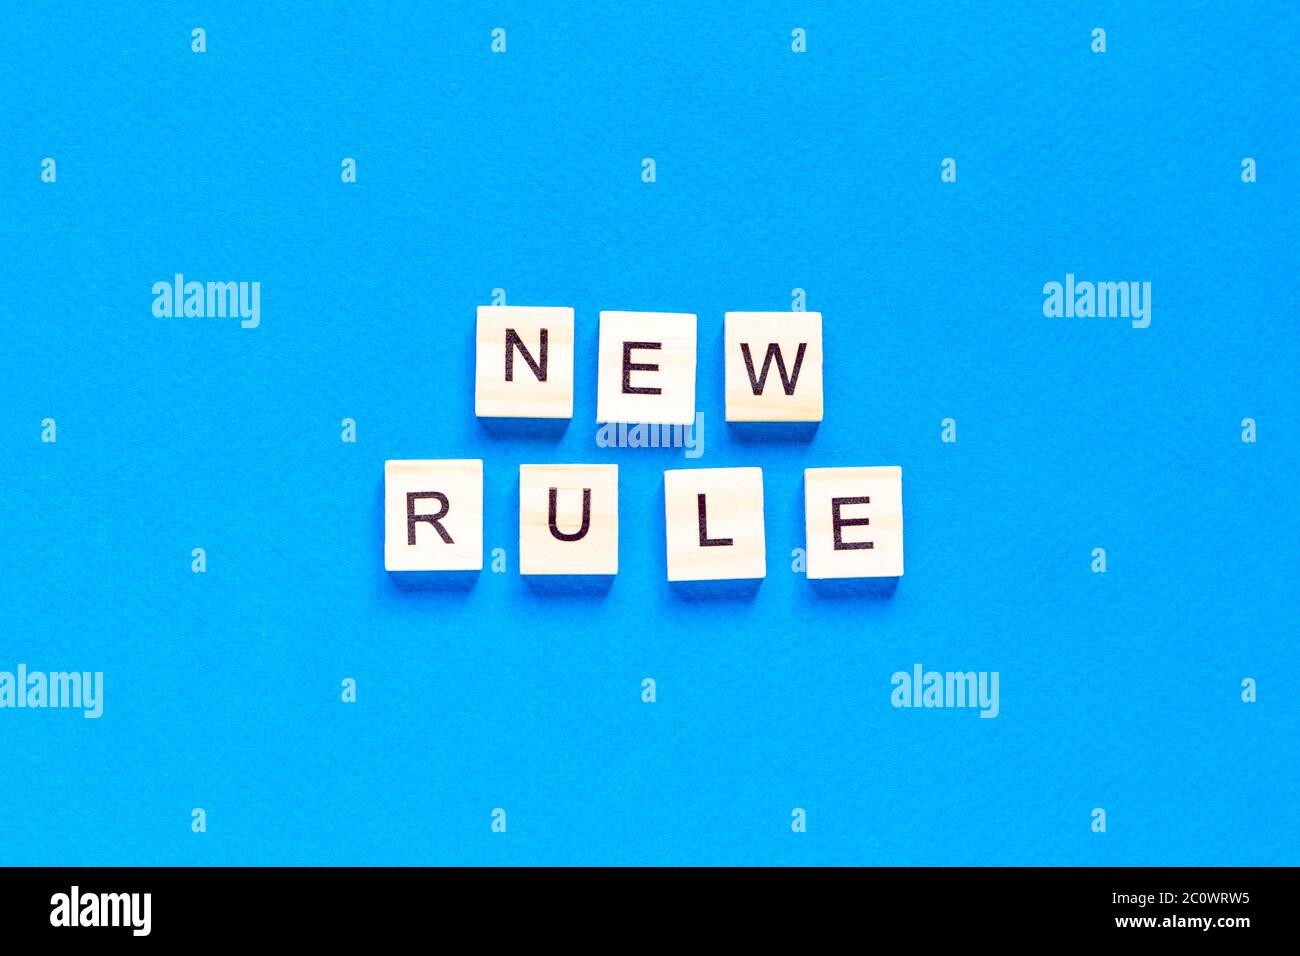 The NEW RULE is written in wooden letters on a blue background. New concept. Business, law, rules, update. tflat layout. op view. Stock Photo